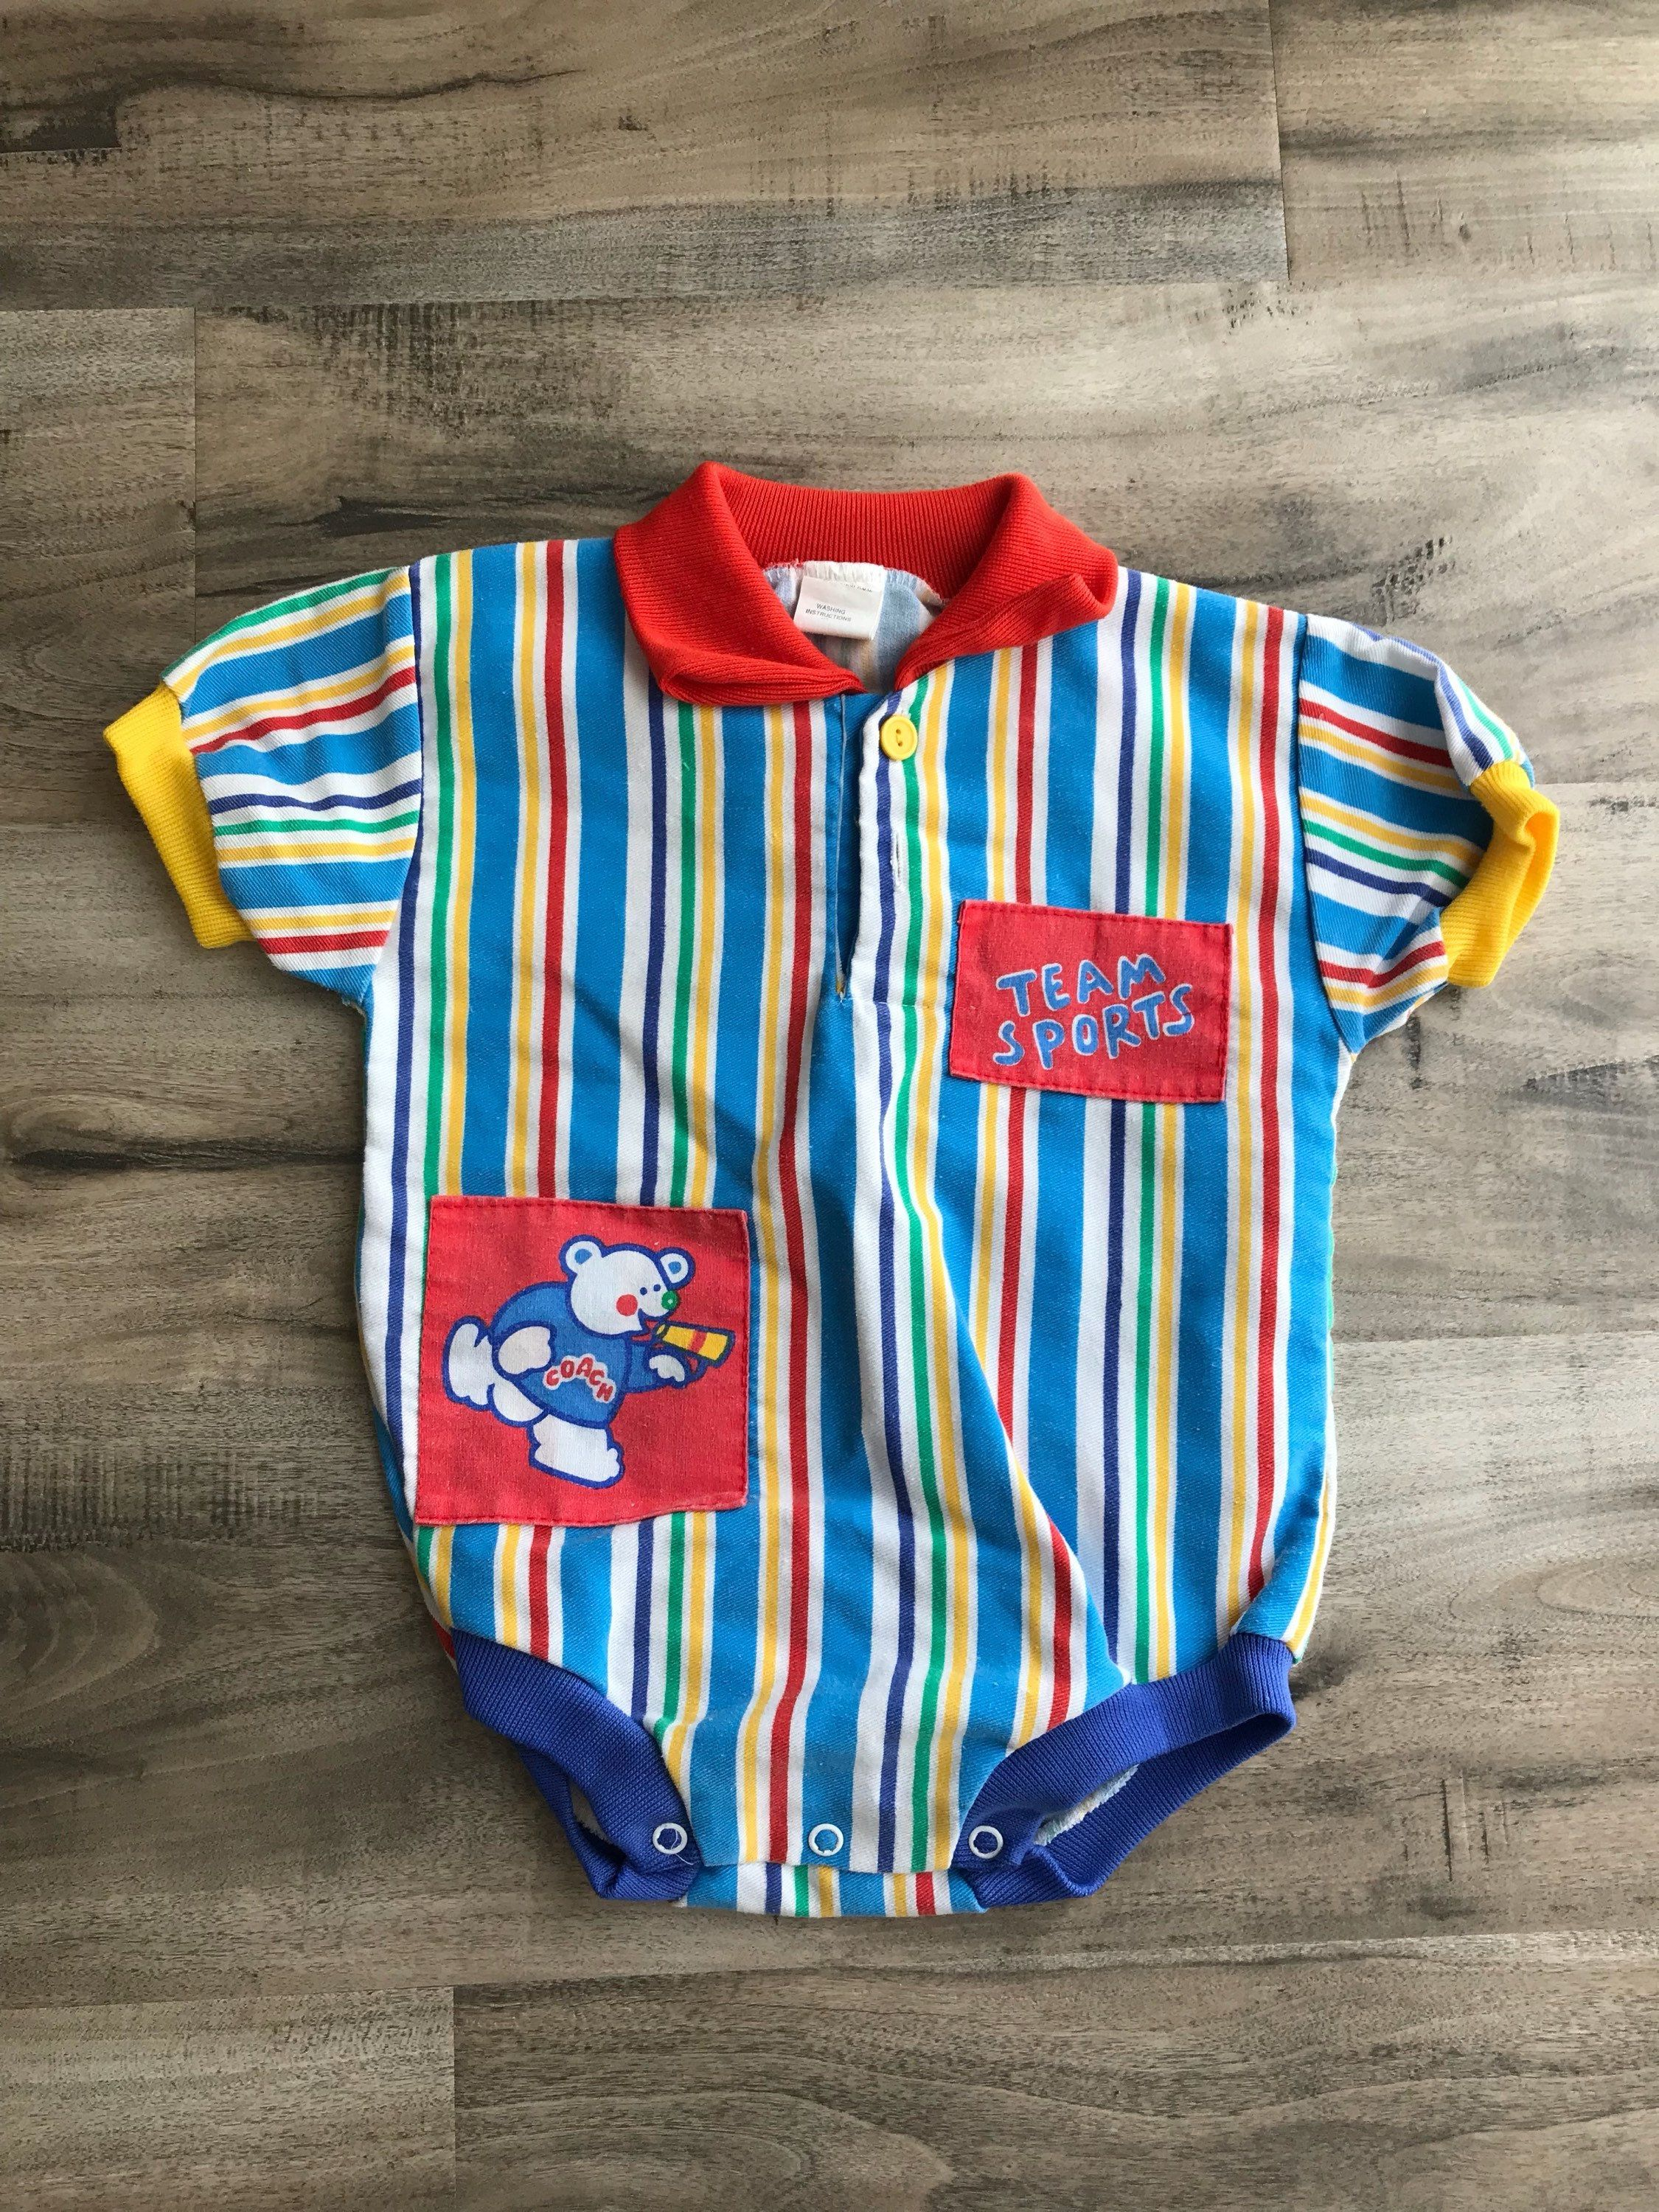 Ugly Baby Outfits : outfits, Miranda, Gonzalez, Pines, Guardados, Vintage, Clothes,, Outfits